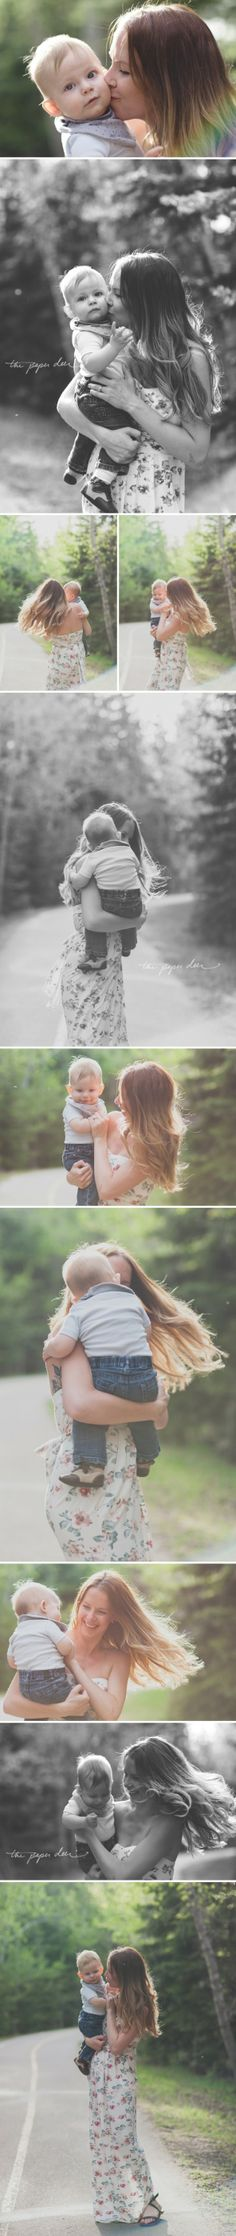 .I love these family photos--how they're less posed. Photo by Paper Deer Photography.